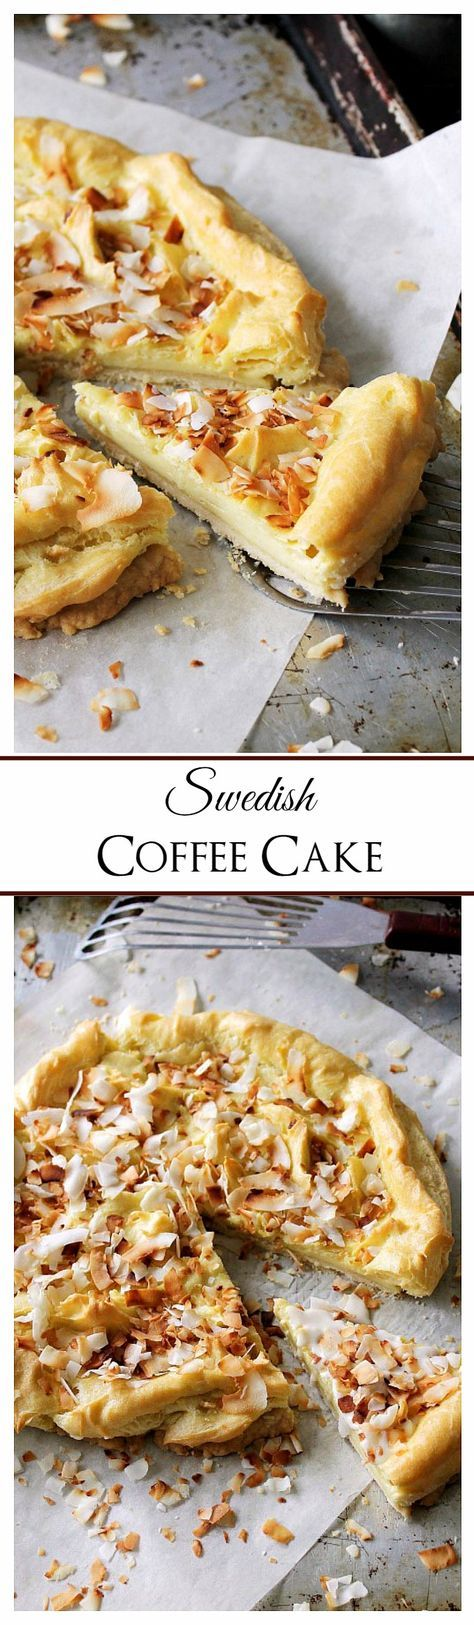 Swedish Coffee Cake - Delicious and buttery pie crust topped with a pastry mixture, a sweet glaze, and toasted coconut.